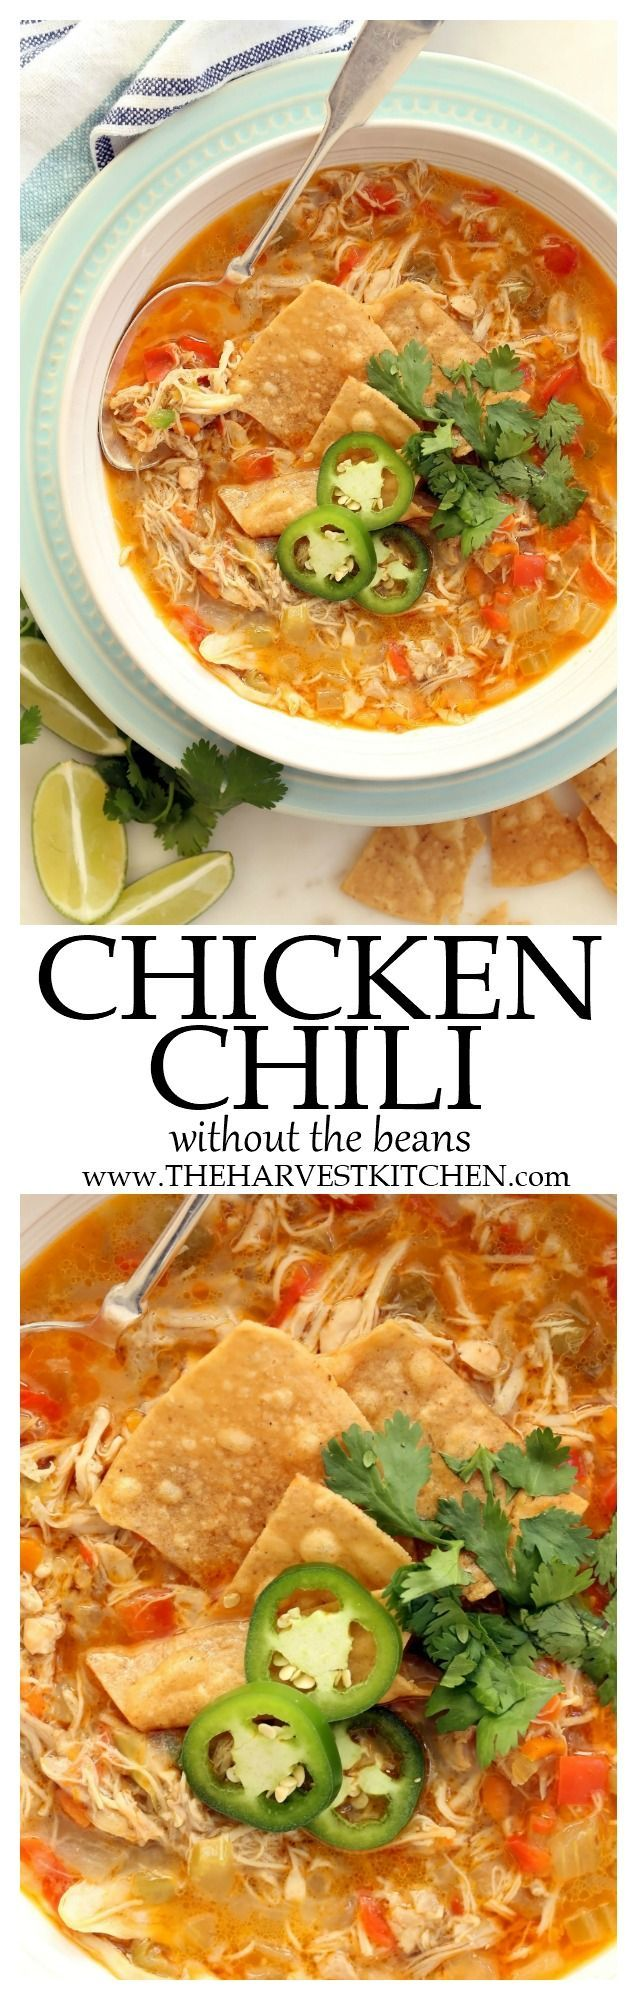 This Chicken Chili without Beans is super easy to make any night of the week. It's loaded with tender bites of chicken simmered in a richly flavored broth.| beanless chili recipe | | easy chicken chili | | white chicken chili | | clean eating | | healthy recipes |